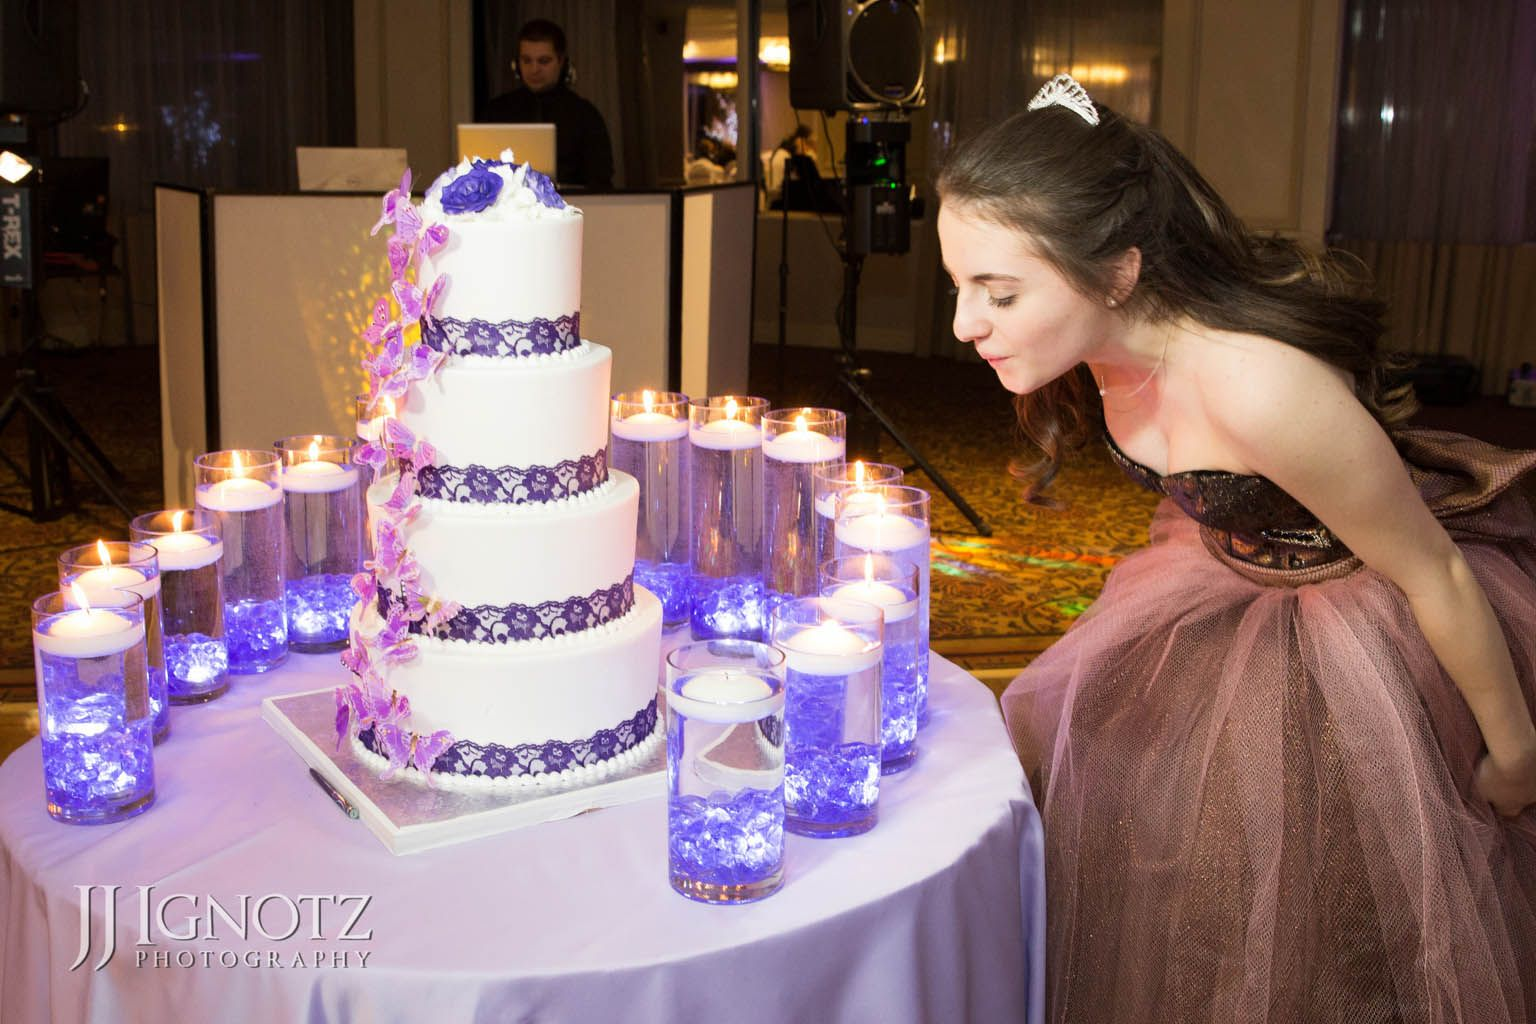 Candle Lighting Display for Sweet Sixteen Quinceanera /& Mitzvah Candle Lighting ceremony